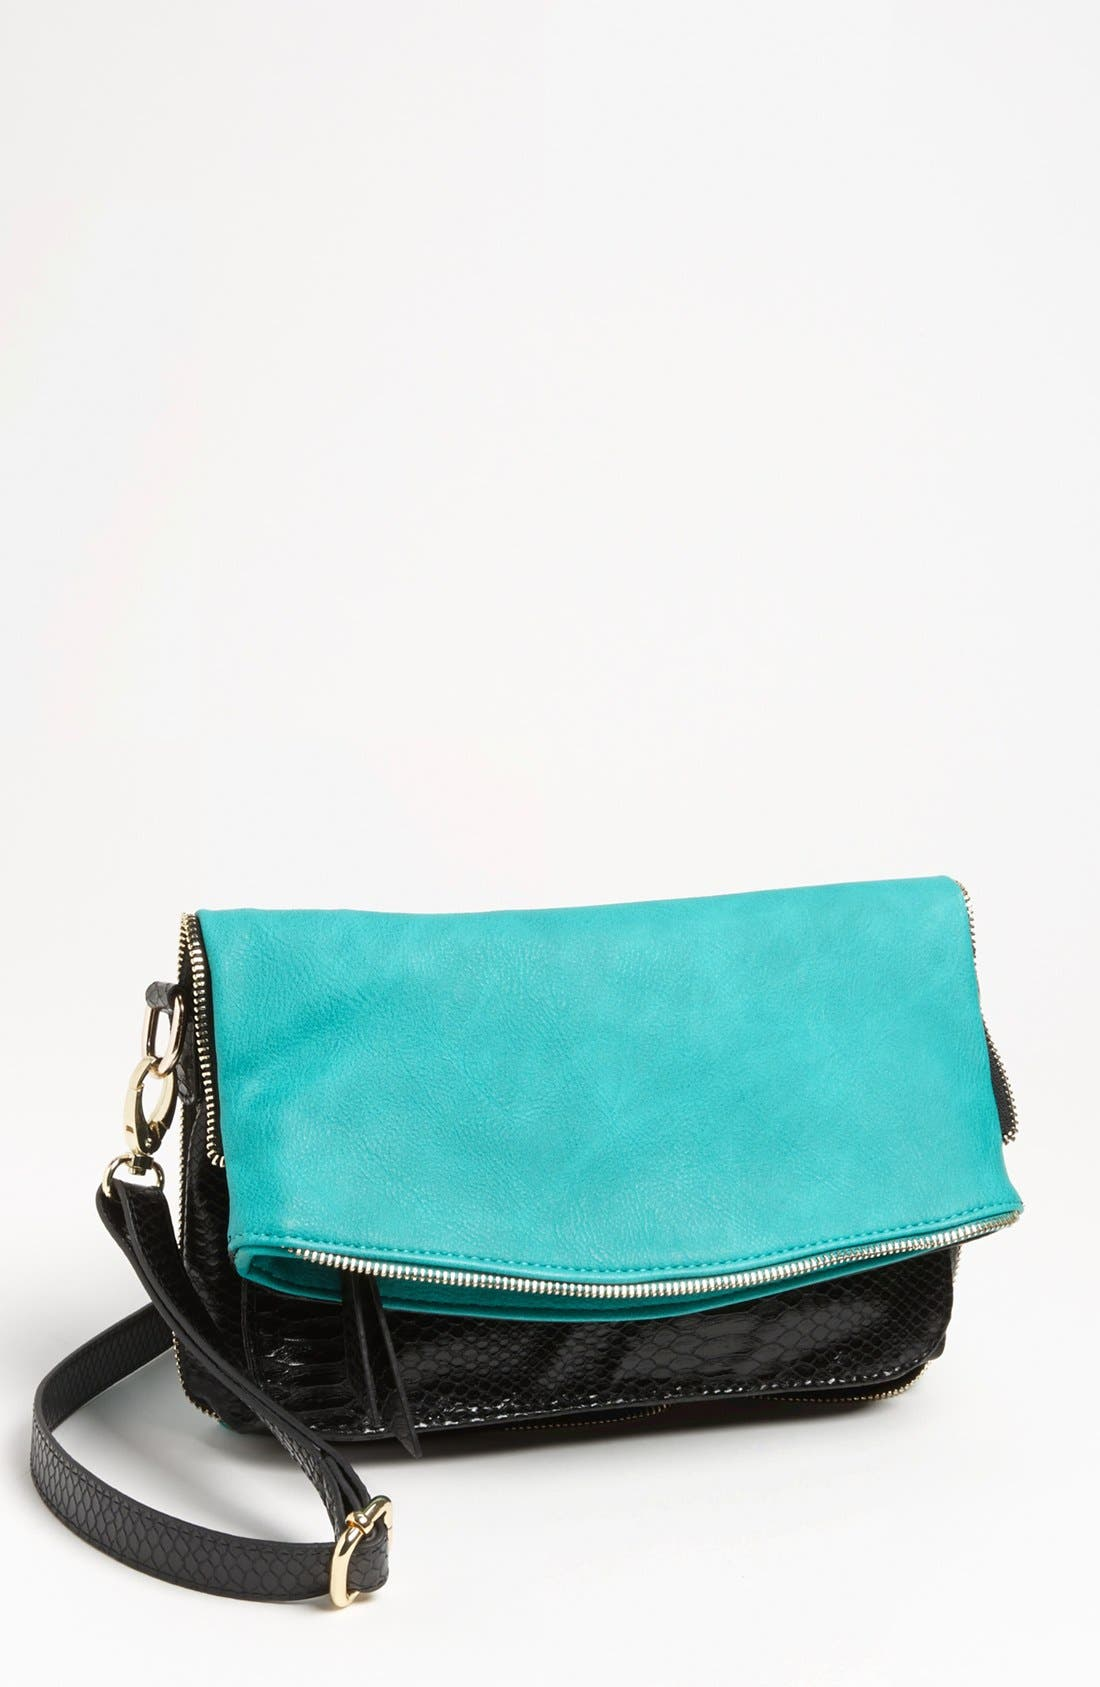 Main Image - Big Buddha 'Orchard' Foldover Crossbody Bag